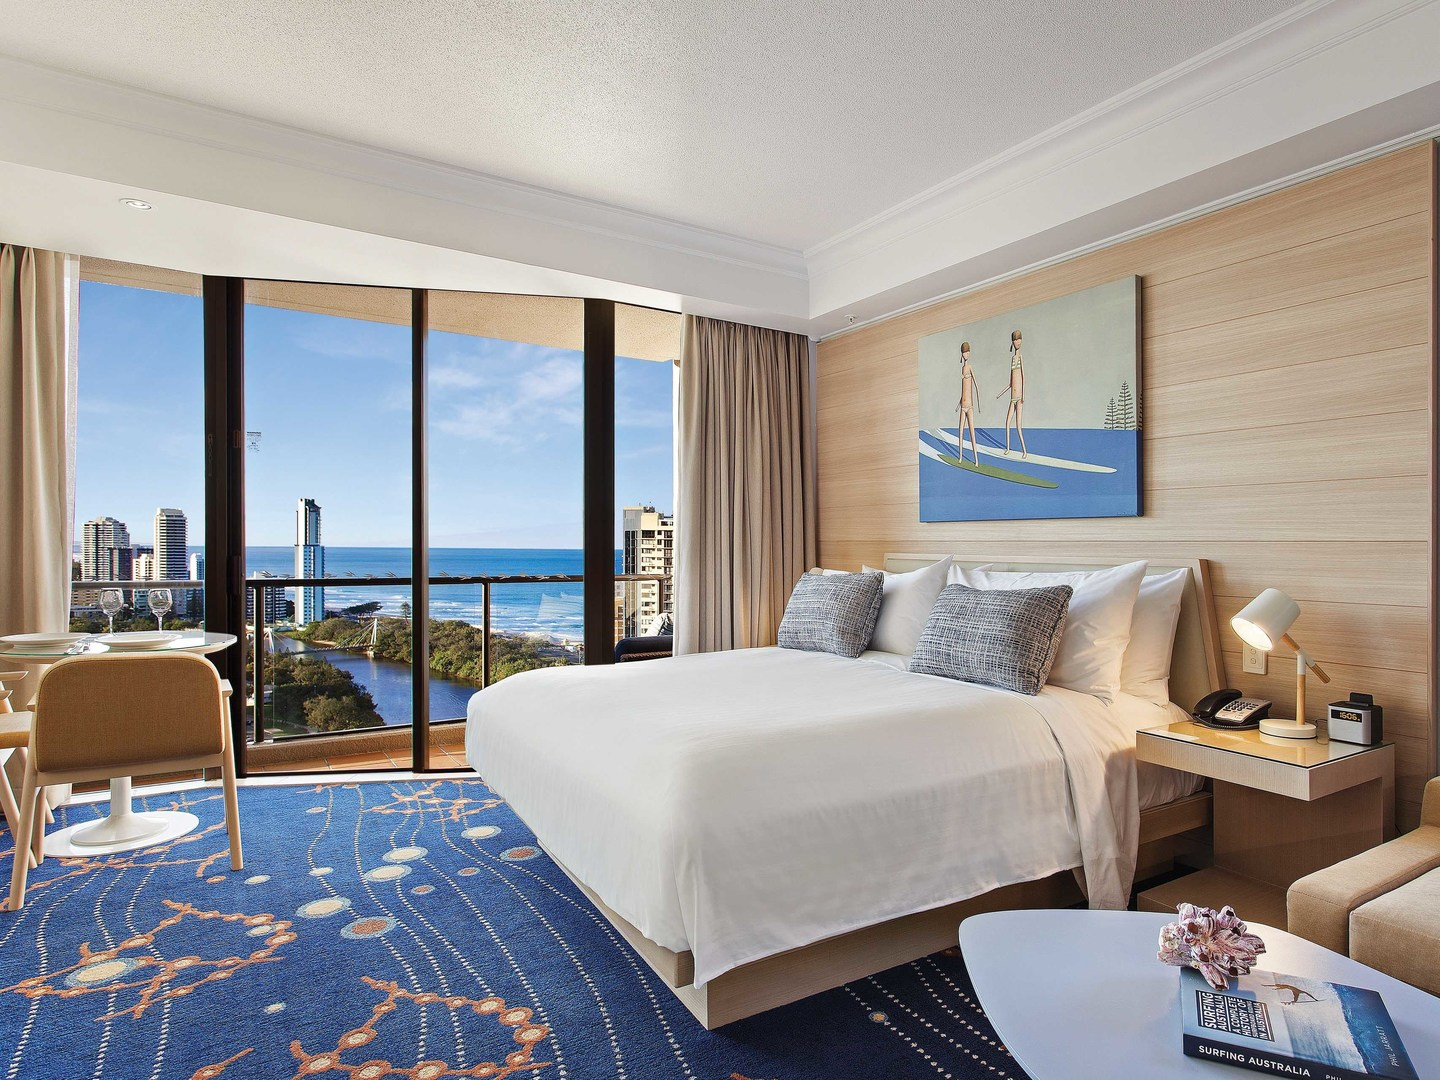 Marriott Vacation Club<span class='trademark'>℠</span> at Surfers Paradise Guest Bedroom/Living Room. Marriott Vacation Club<span class='trademark'>℠</span> at Surfers Paradise is located in Gold Coast, Surfers Paradise Australia.